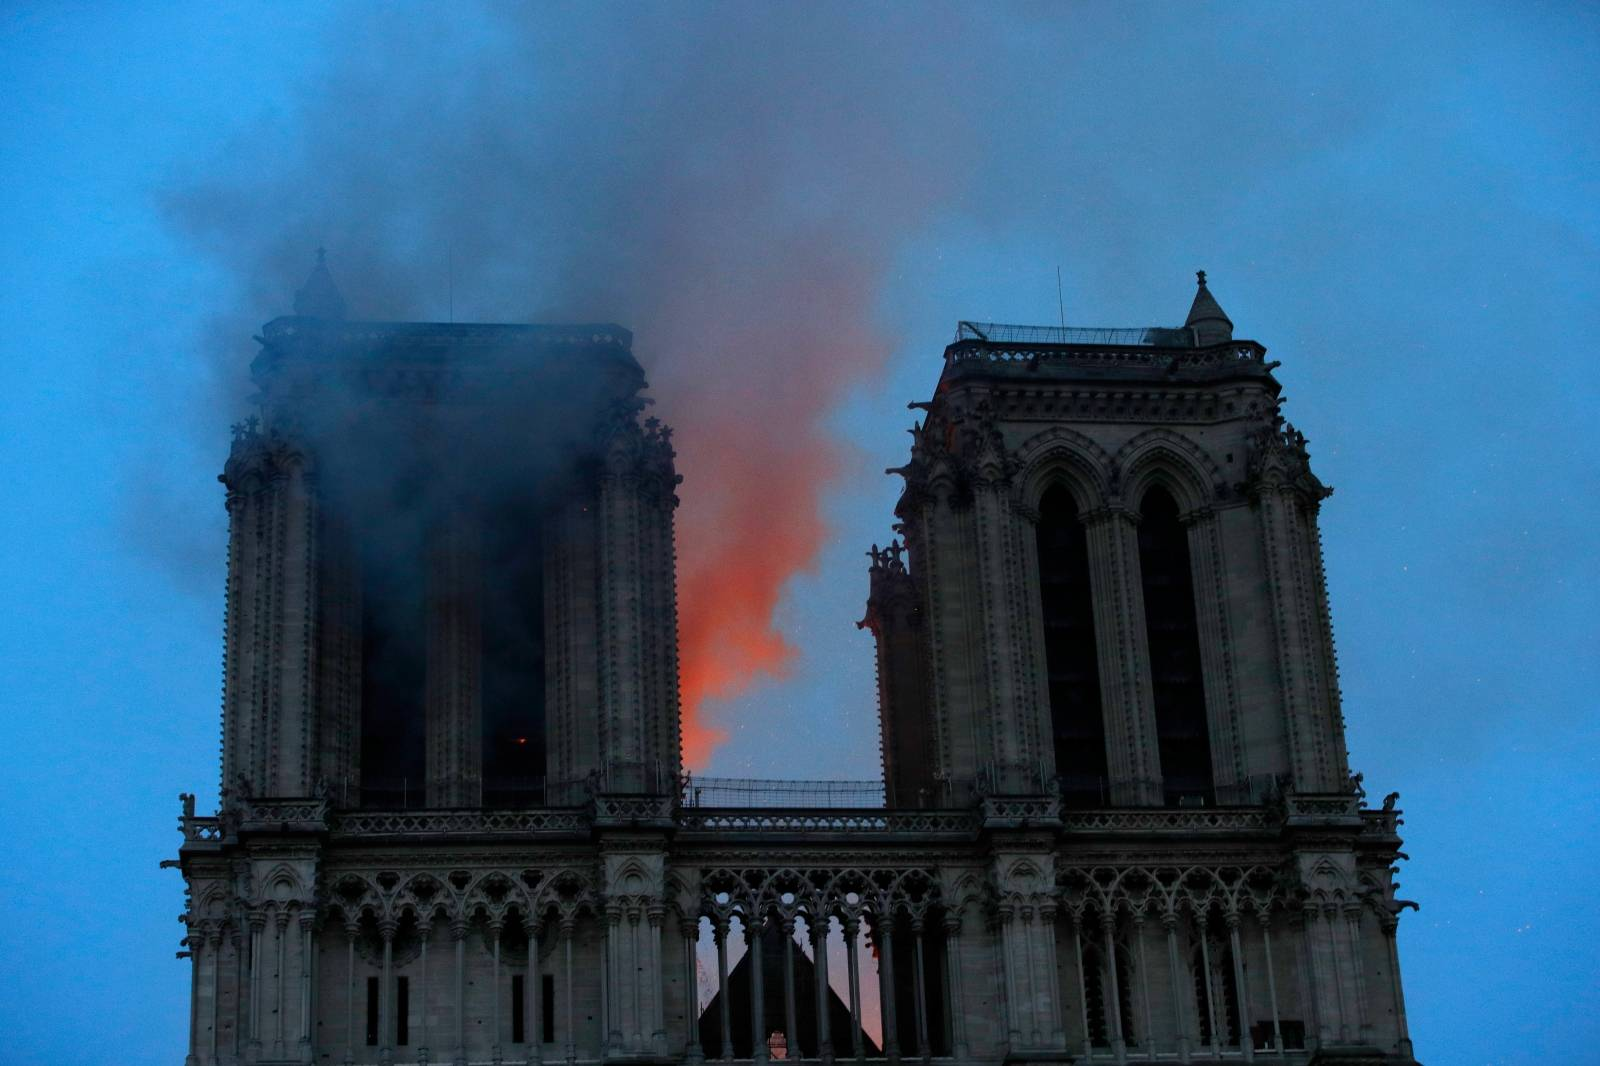 Smoke and flames fill the sky as a fire burns at the Notre Dame Cathedral during the visit by French President Emmanuel Macron (not pictured) in Paris